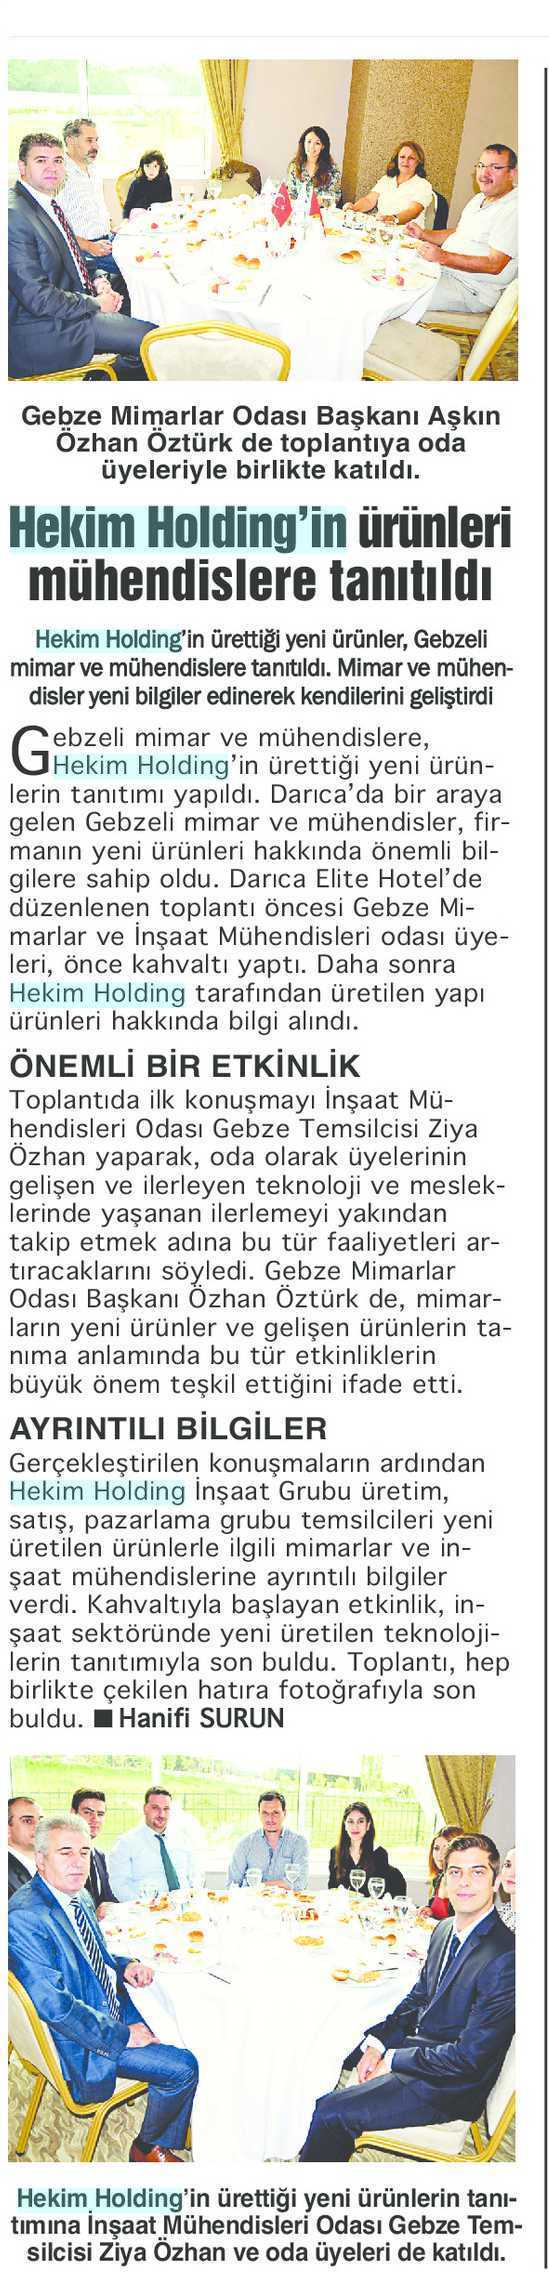 Bizim Kocaeli Journal